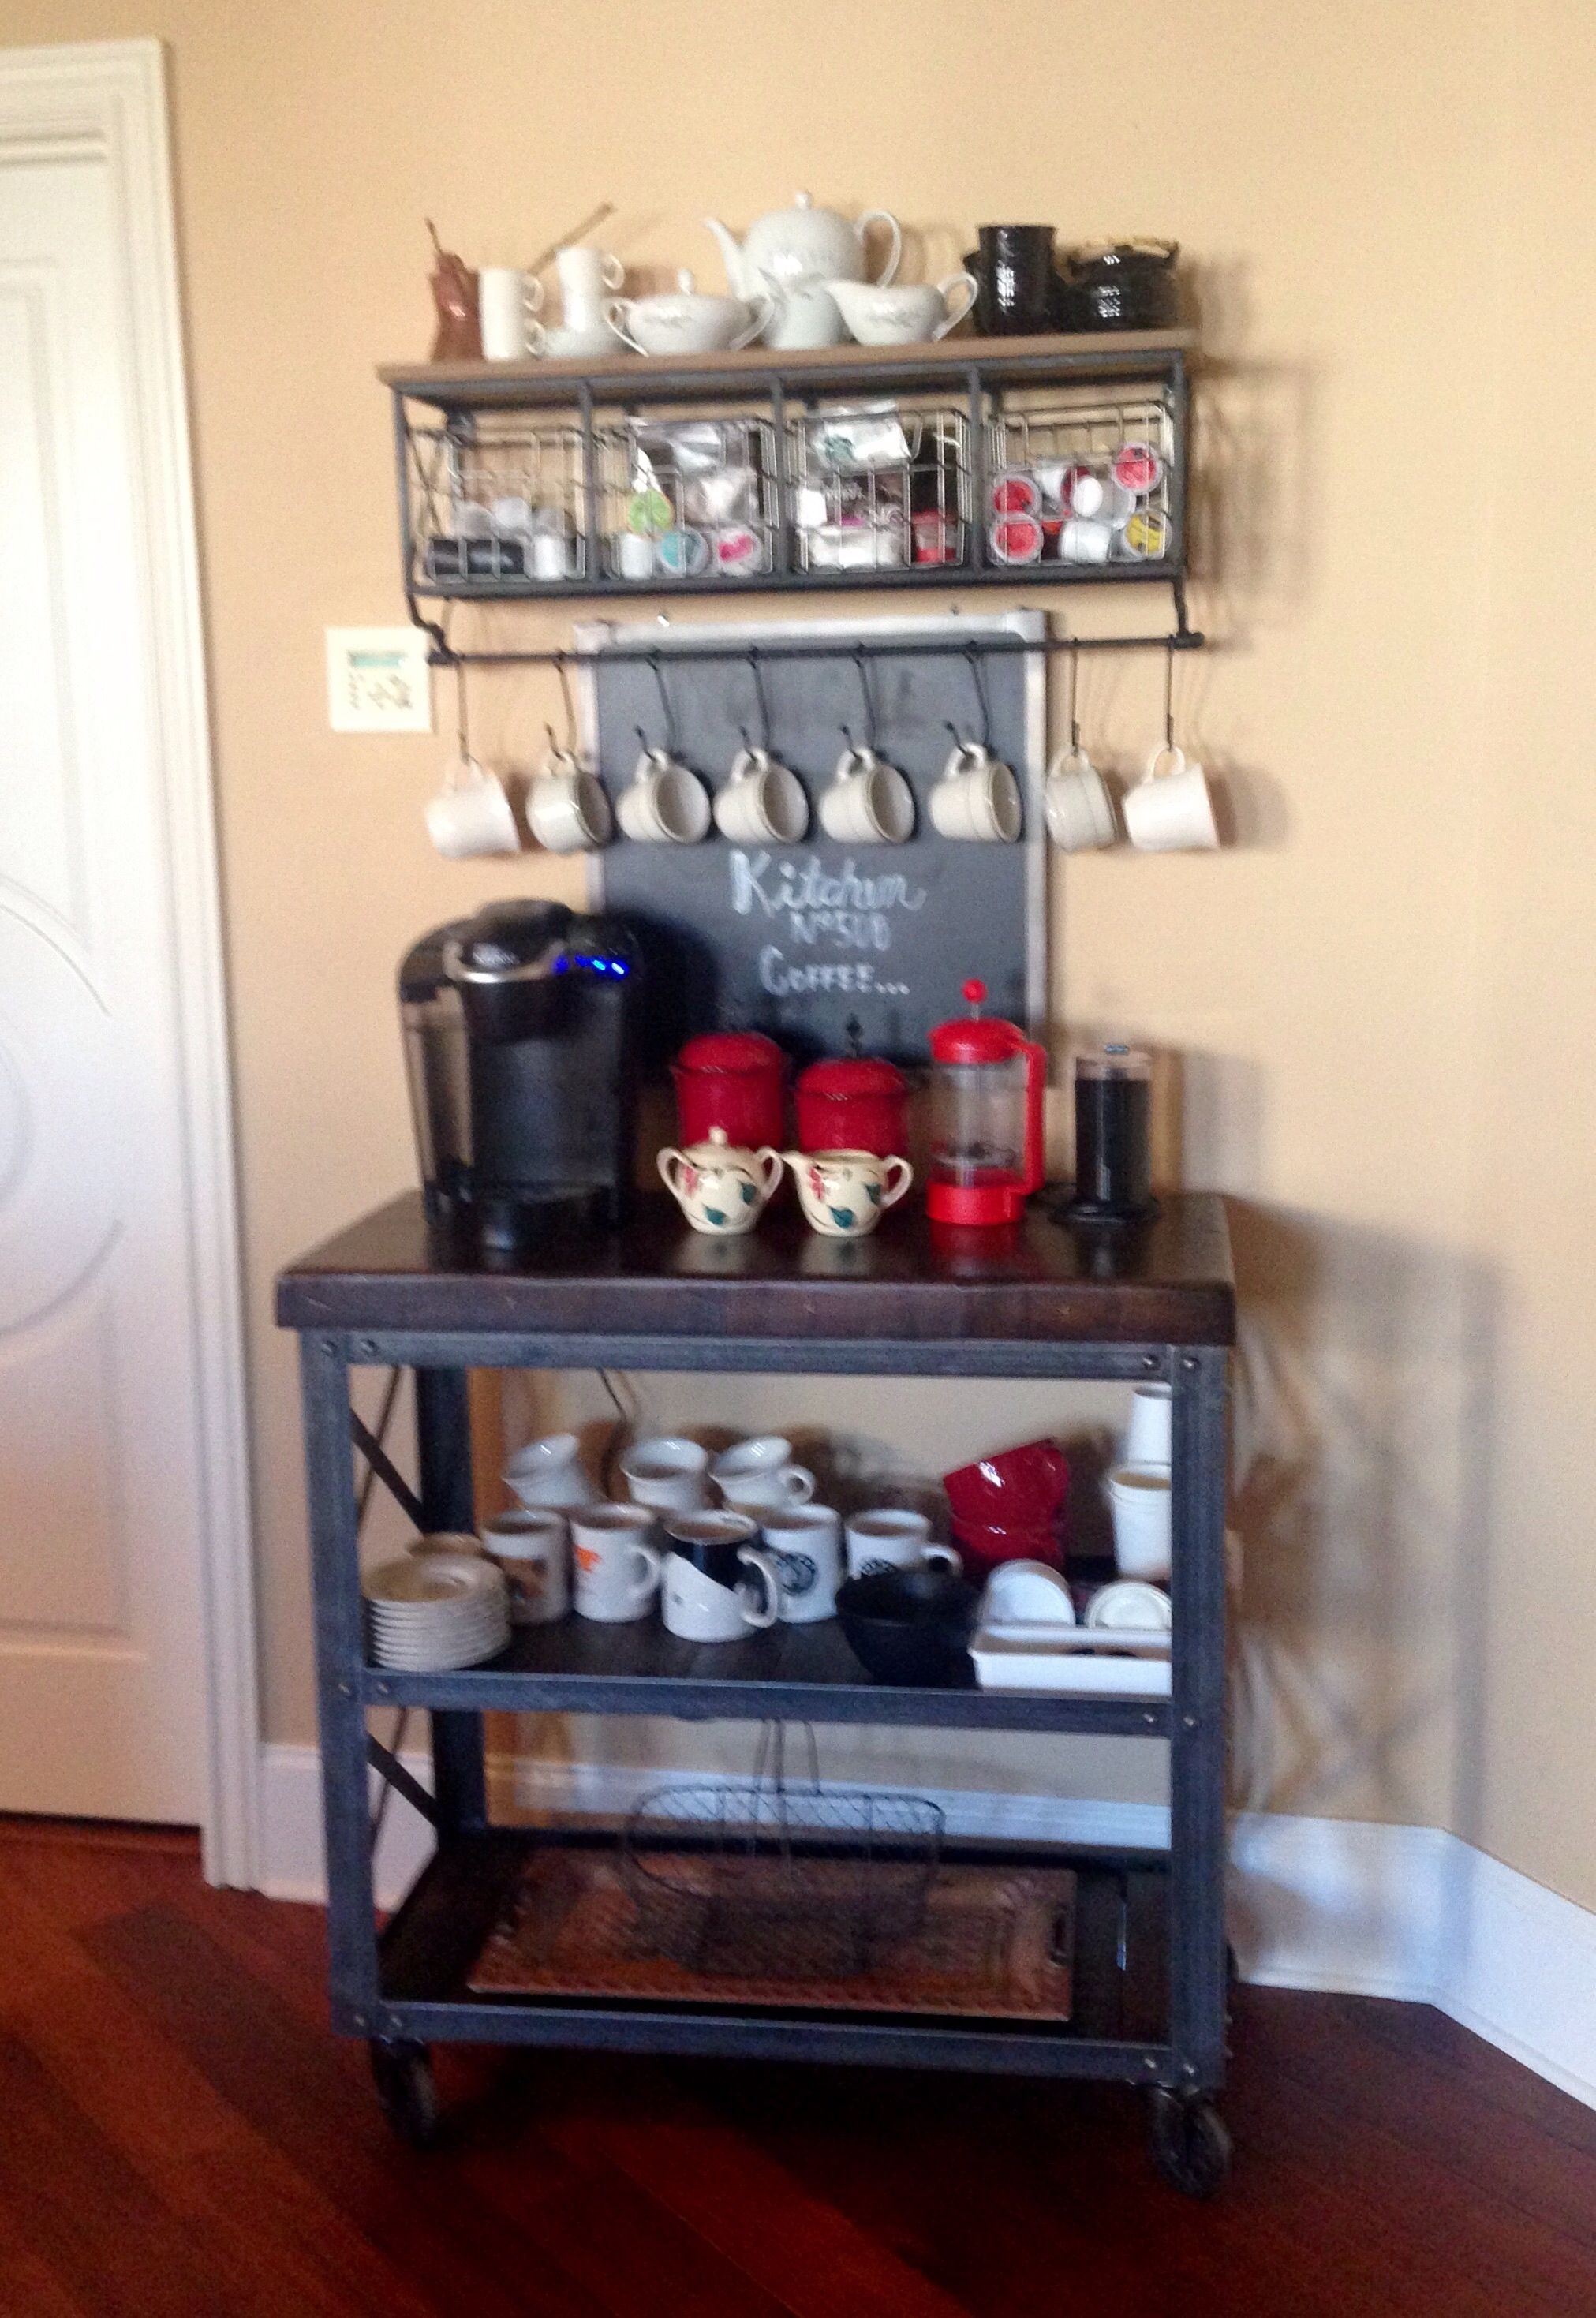 Kitchen No 508 Coffee Station Shelf With Wire Baskets And Hooks Came From Hobby Lobby Cart Came F Coffee Bars In Kitchen Coffee Station Home Coffee Stations